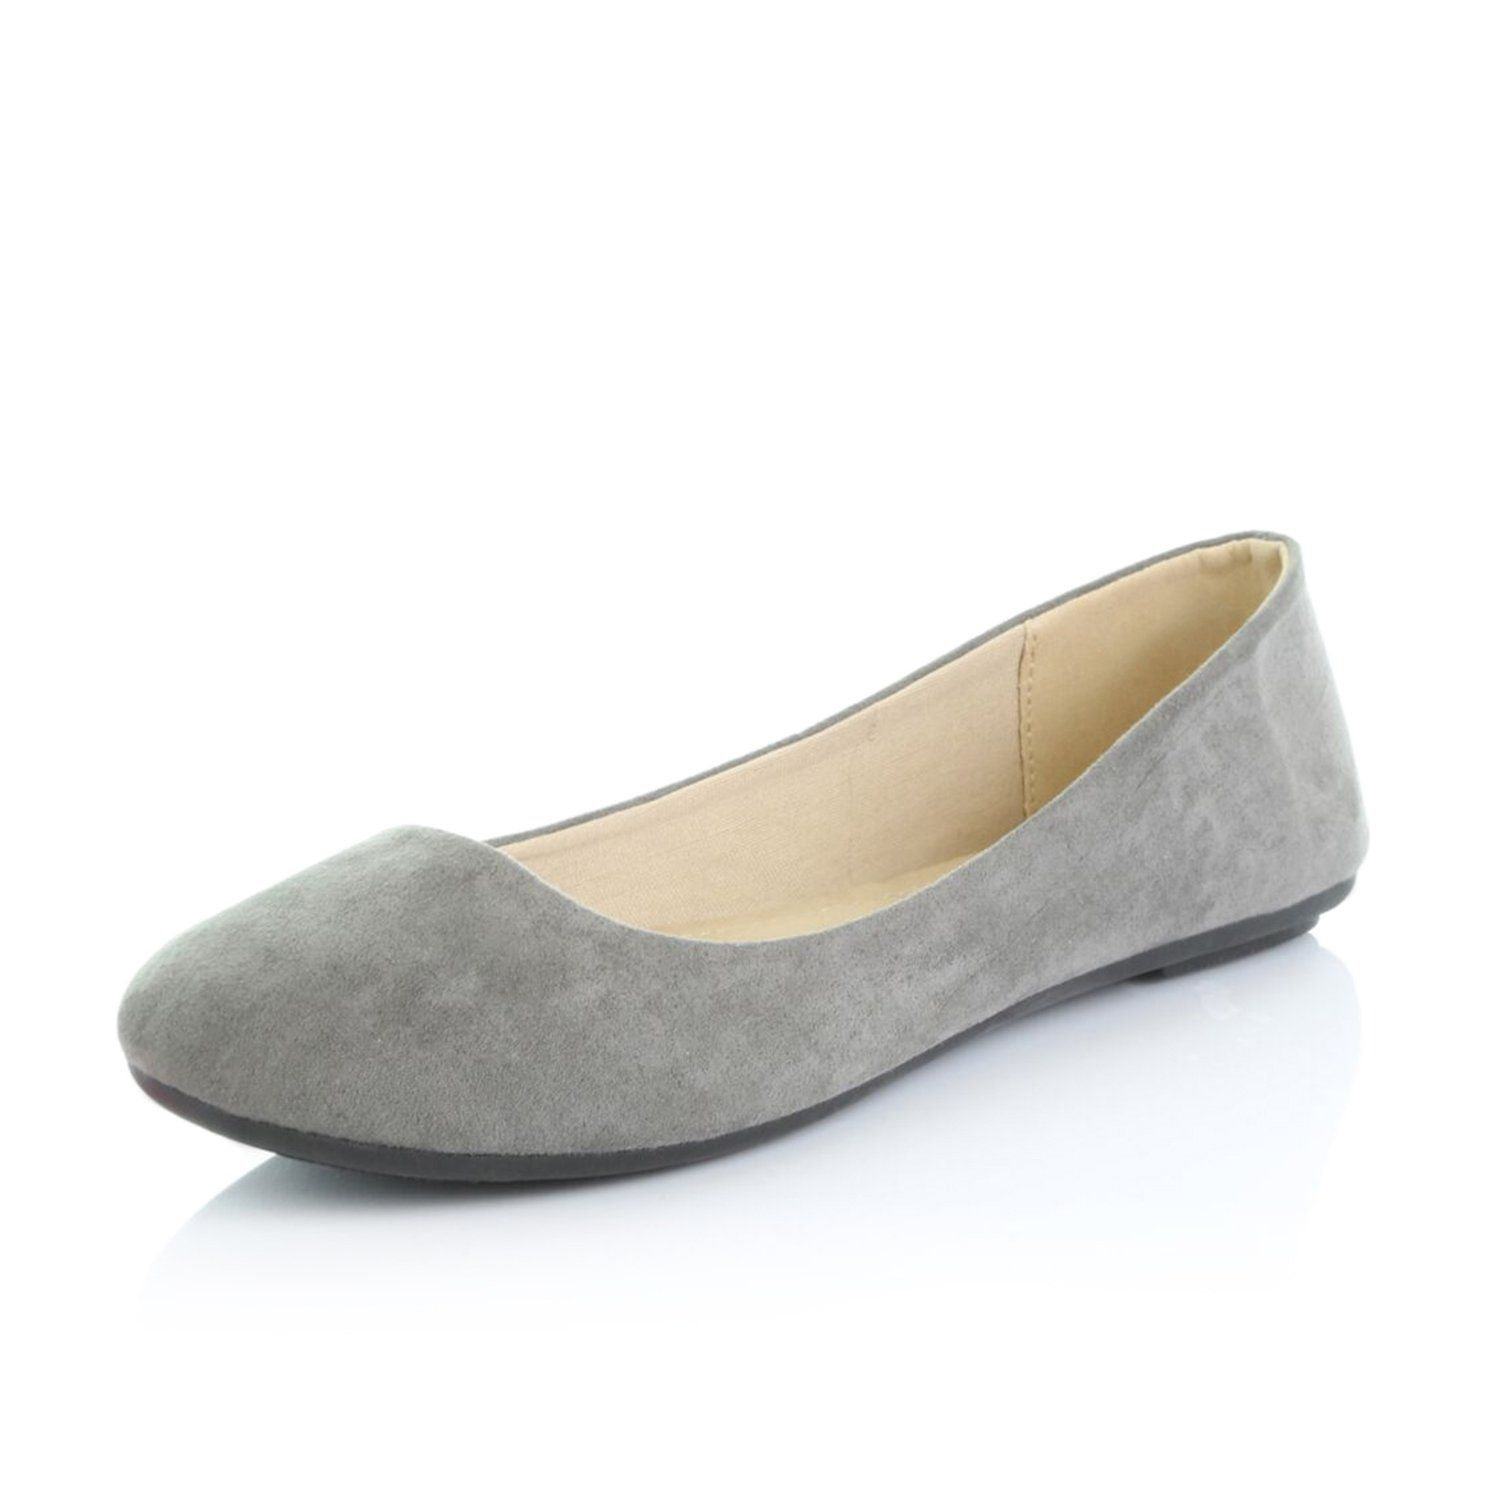 DailyShoes Womens Comfortable Soft Round Toe Flat Slip-on Fashion Loafer Shoes